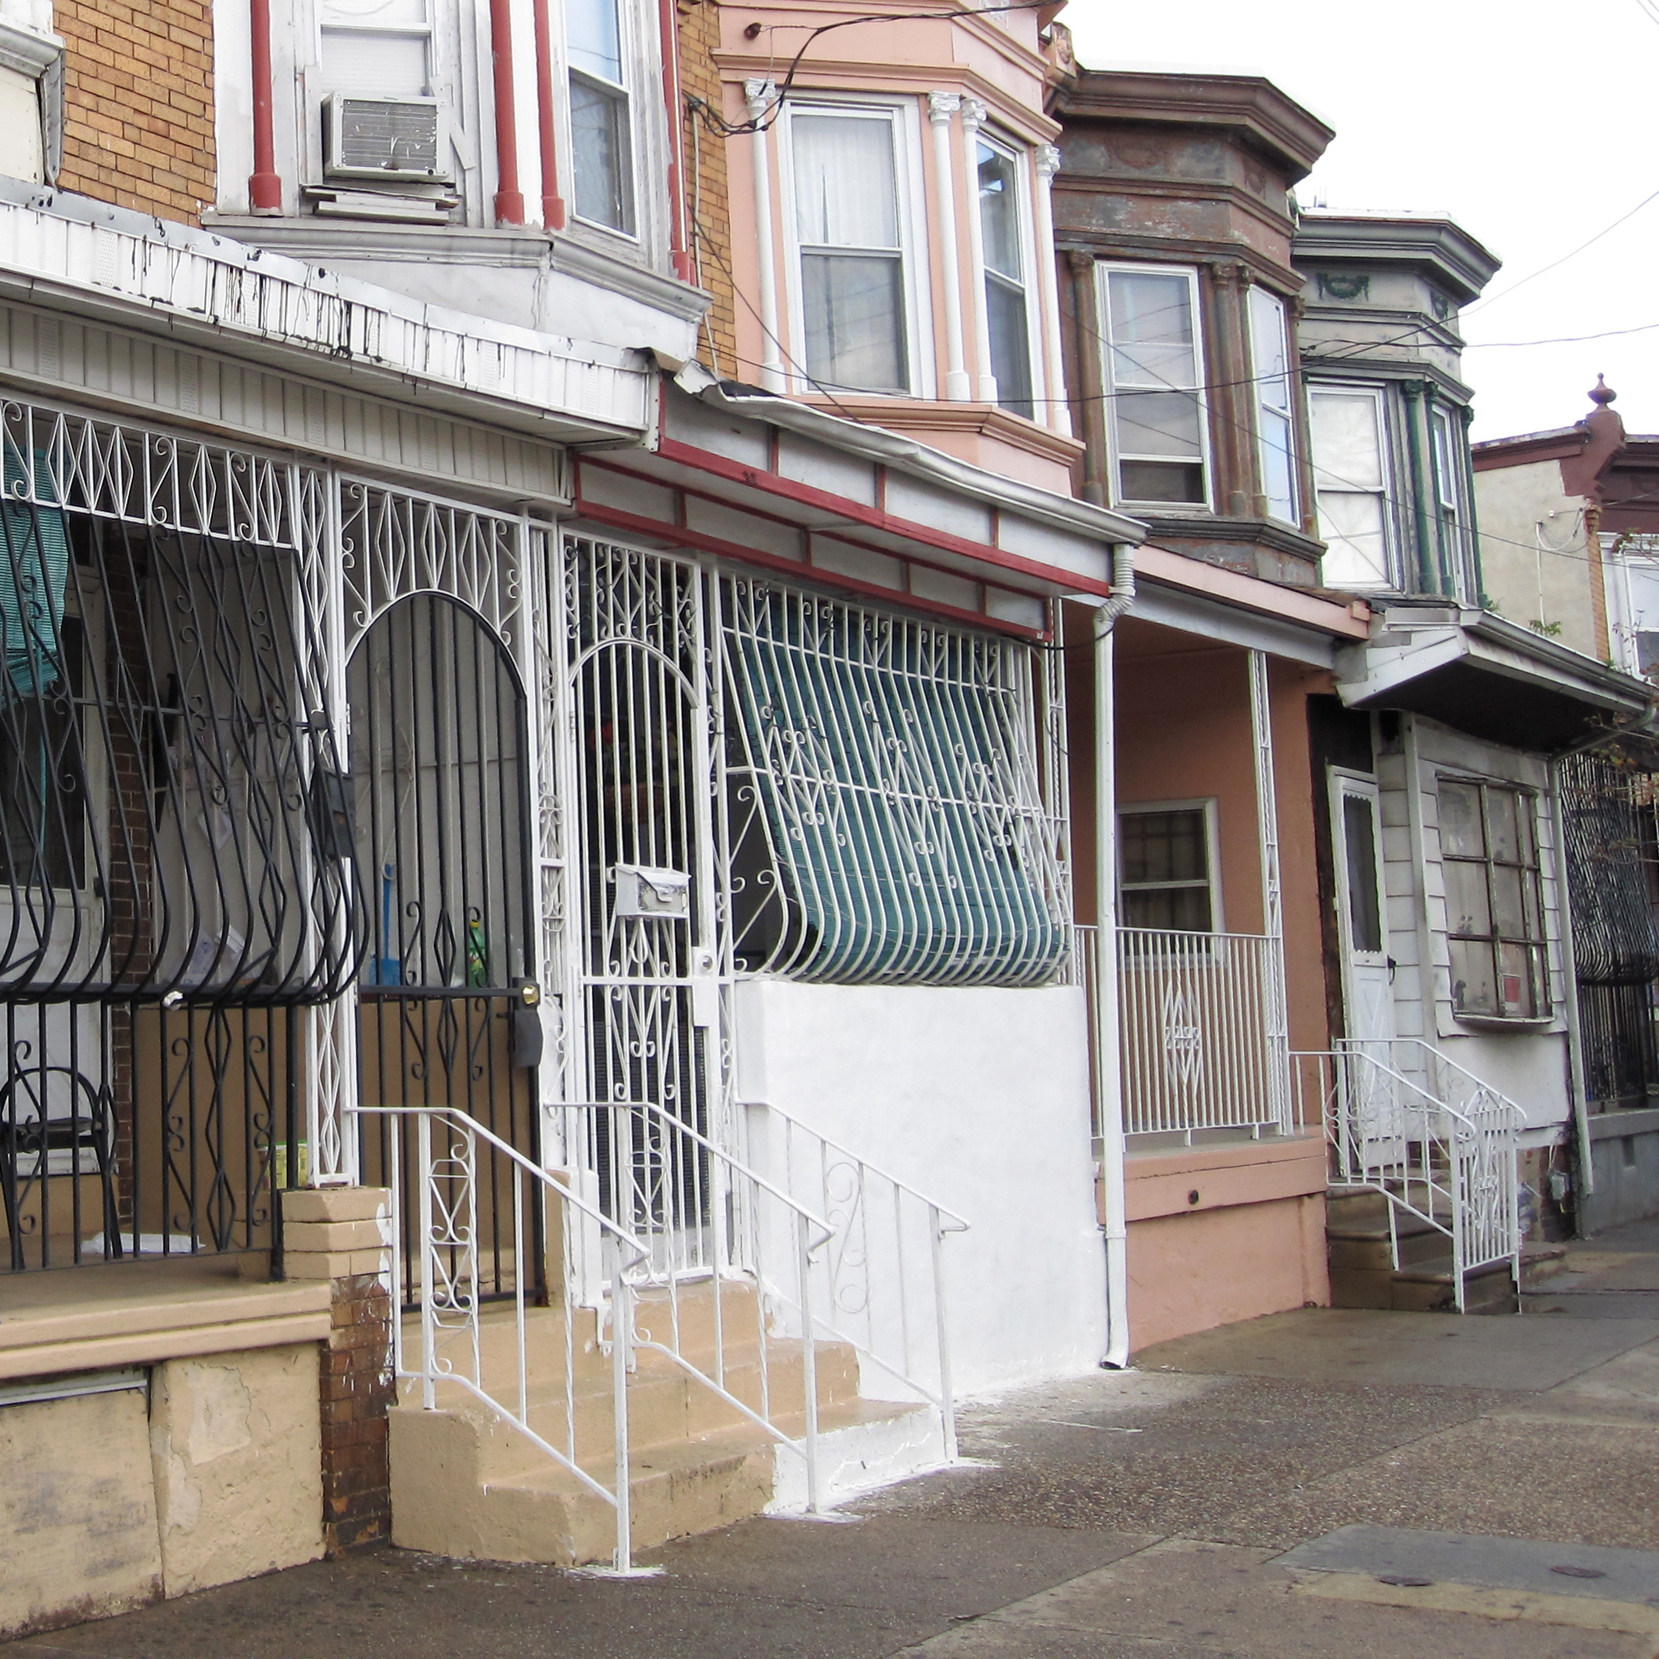 "Because of the city's high crime rate, protective iron bars encase the front porches of many houses in Camden. Residents call them ""bird cages."""